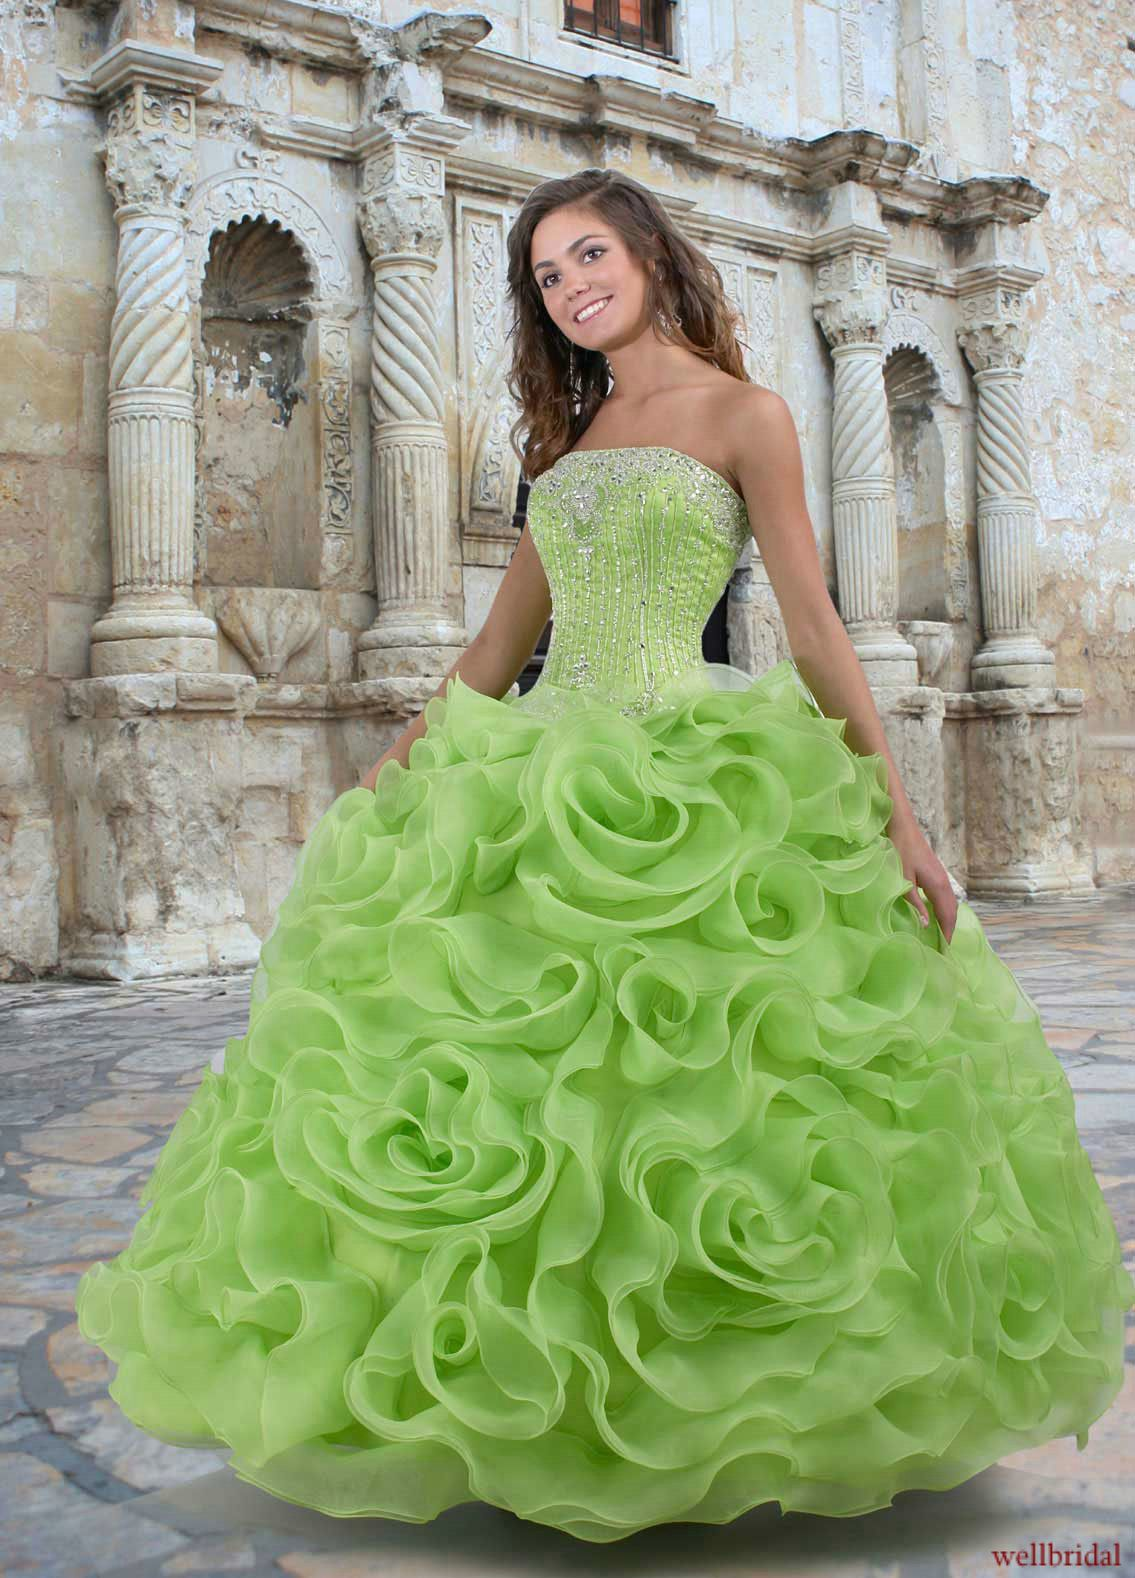 I Love Lime Green And So Does My Daughter Could See Us Wearing Dresses